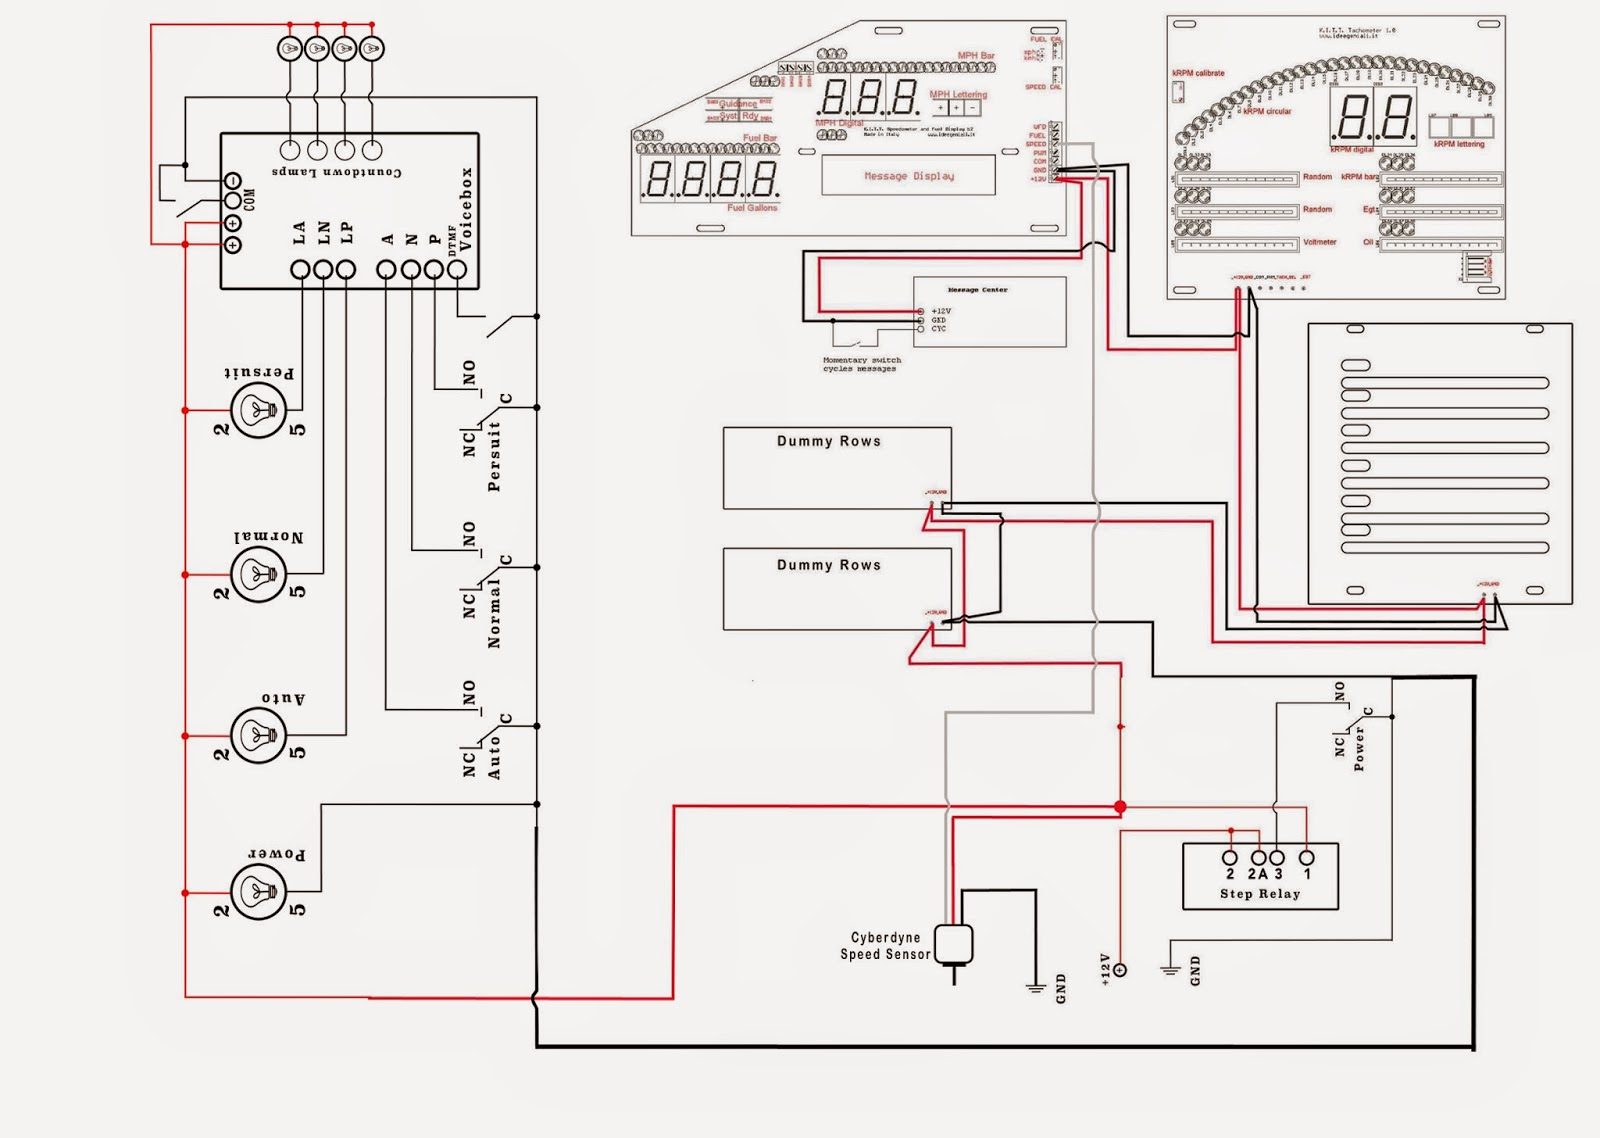 speed sensor wiring diagram typical light switch my knight rider 2000 project cyberdyne